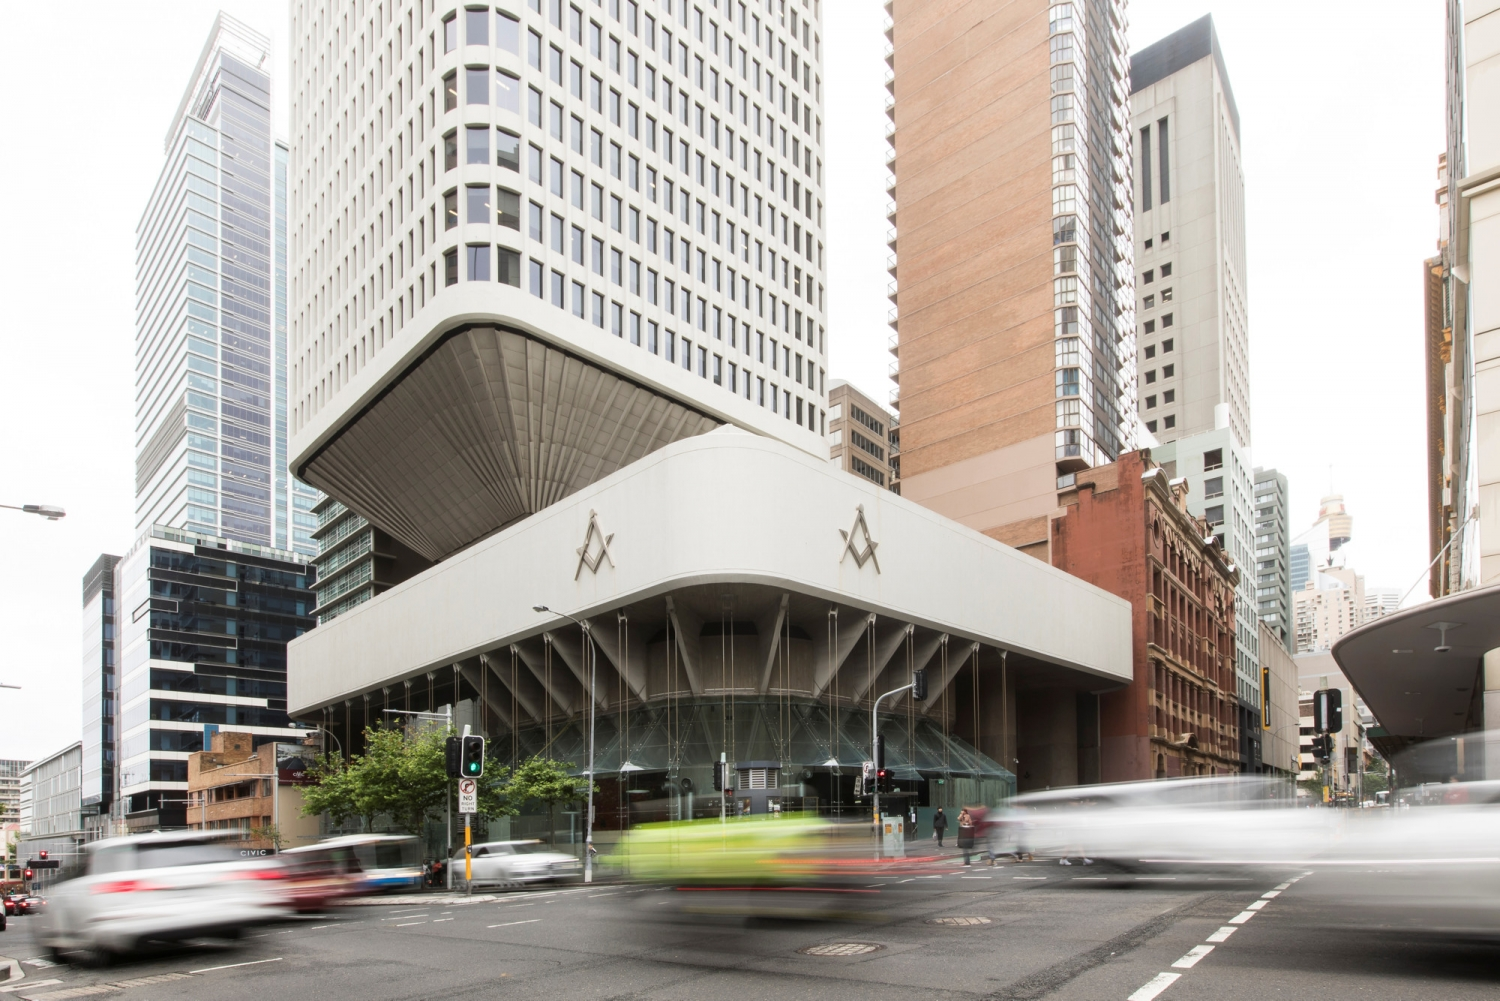 Exterior of the Sydney Masonic Centre, taken during Sydney Open.